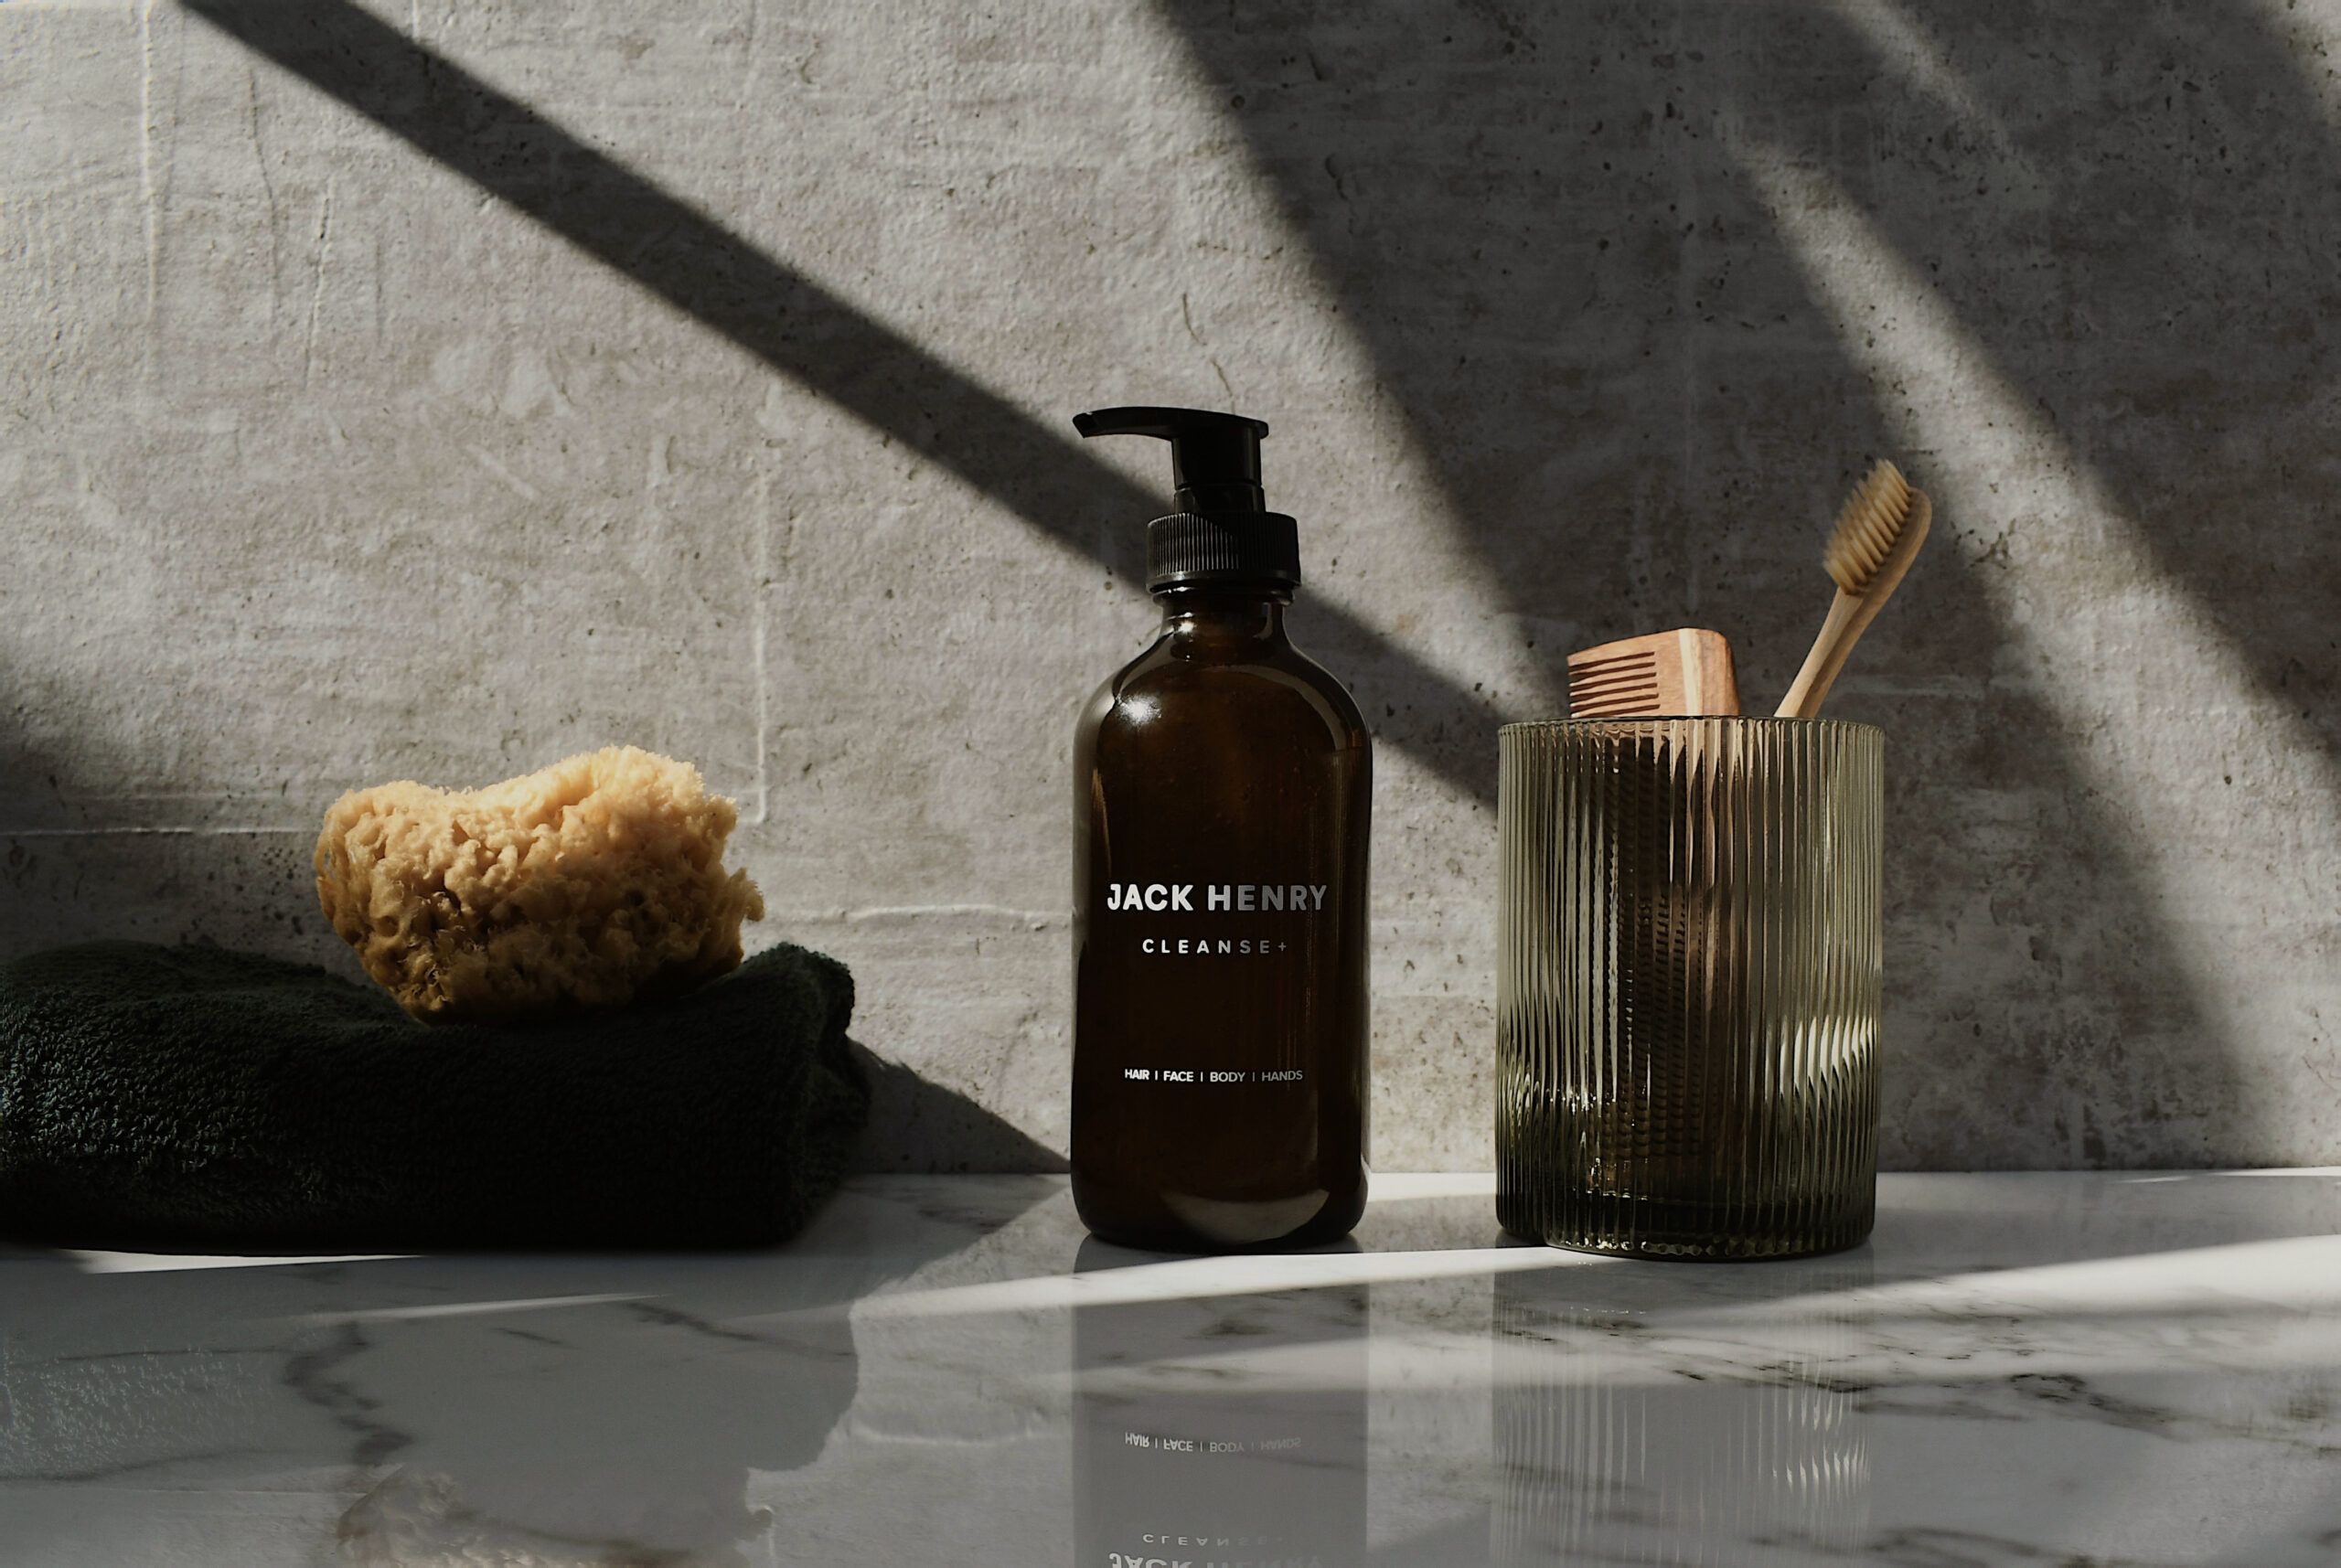 Jack Henry Cleanse